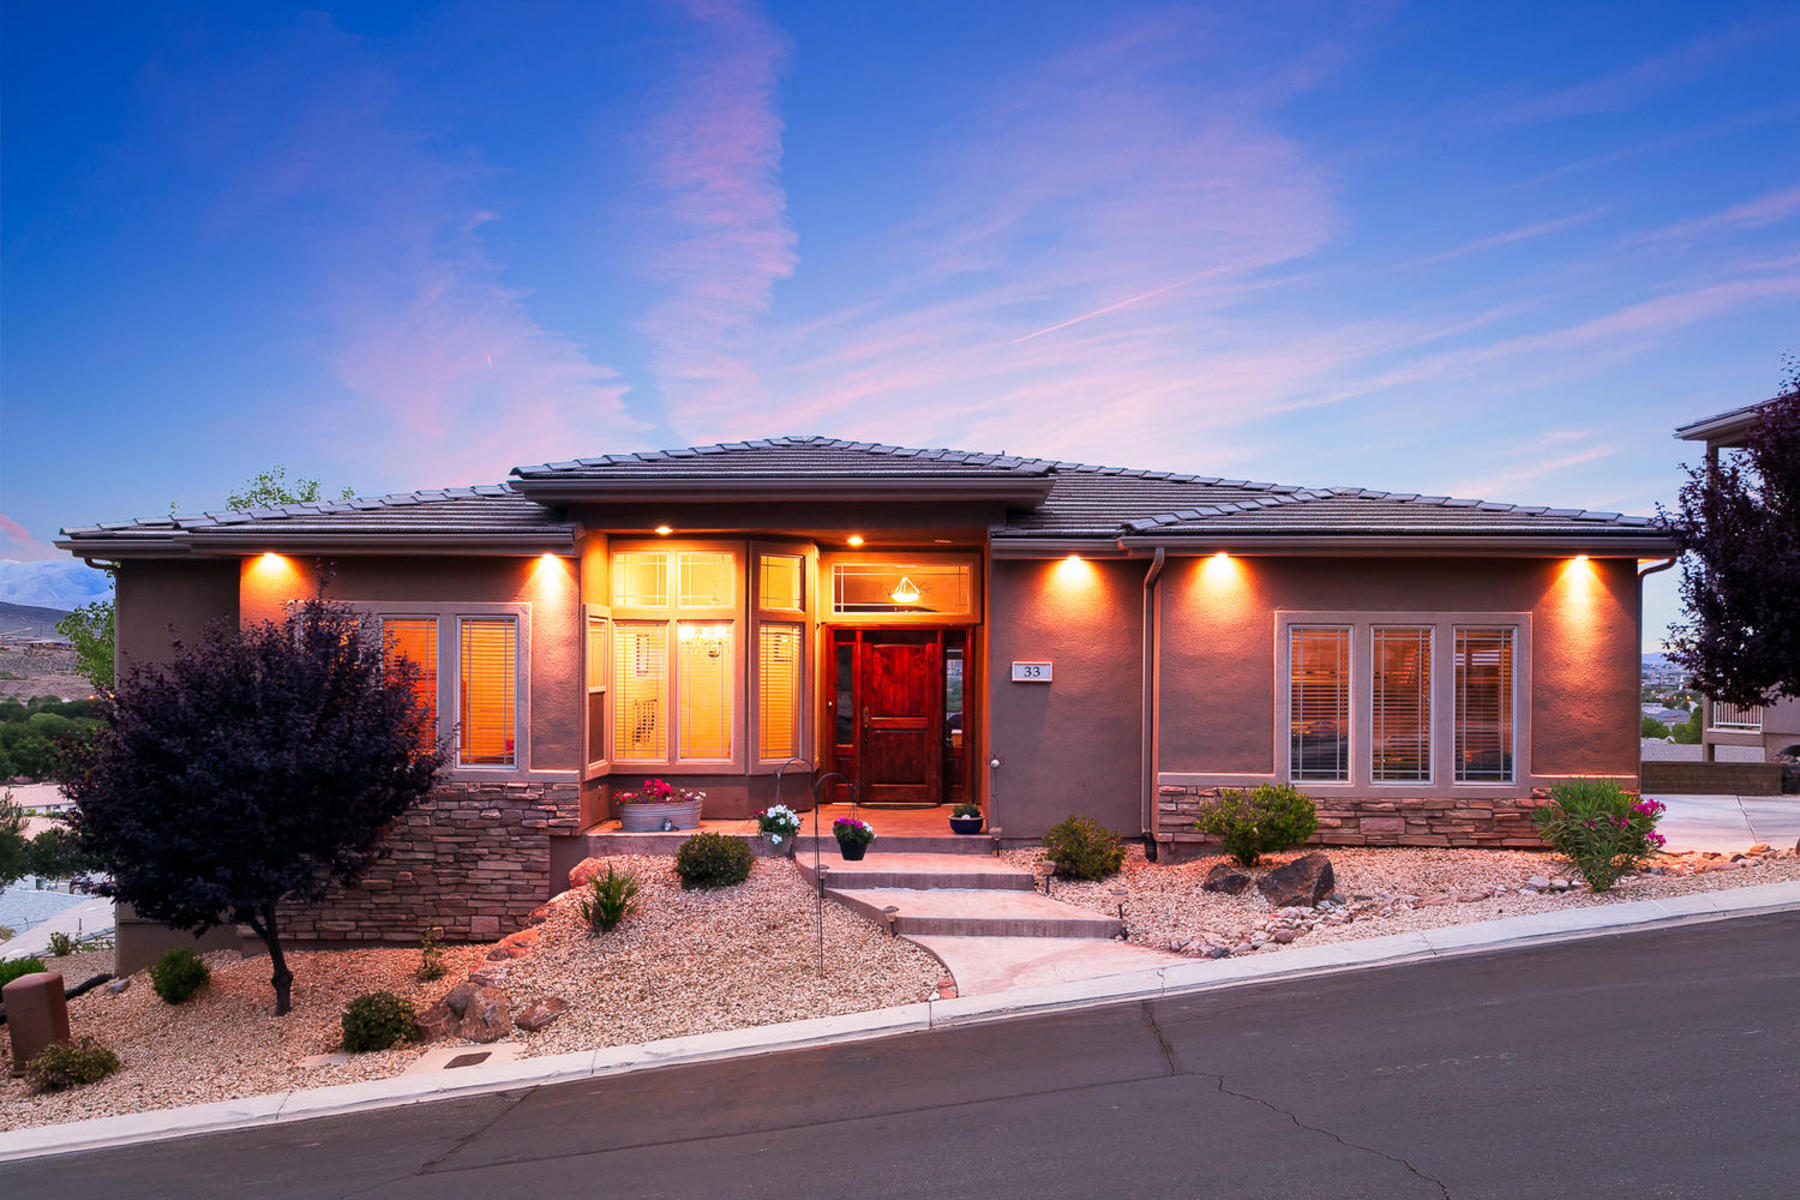 Single Family Home for Sale at Beautiful Valley Views! 1210 W Indian Hills Dr Unit #33 St. George, Utah 84770 United States